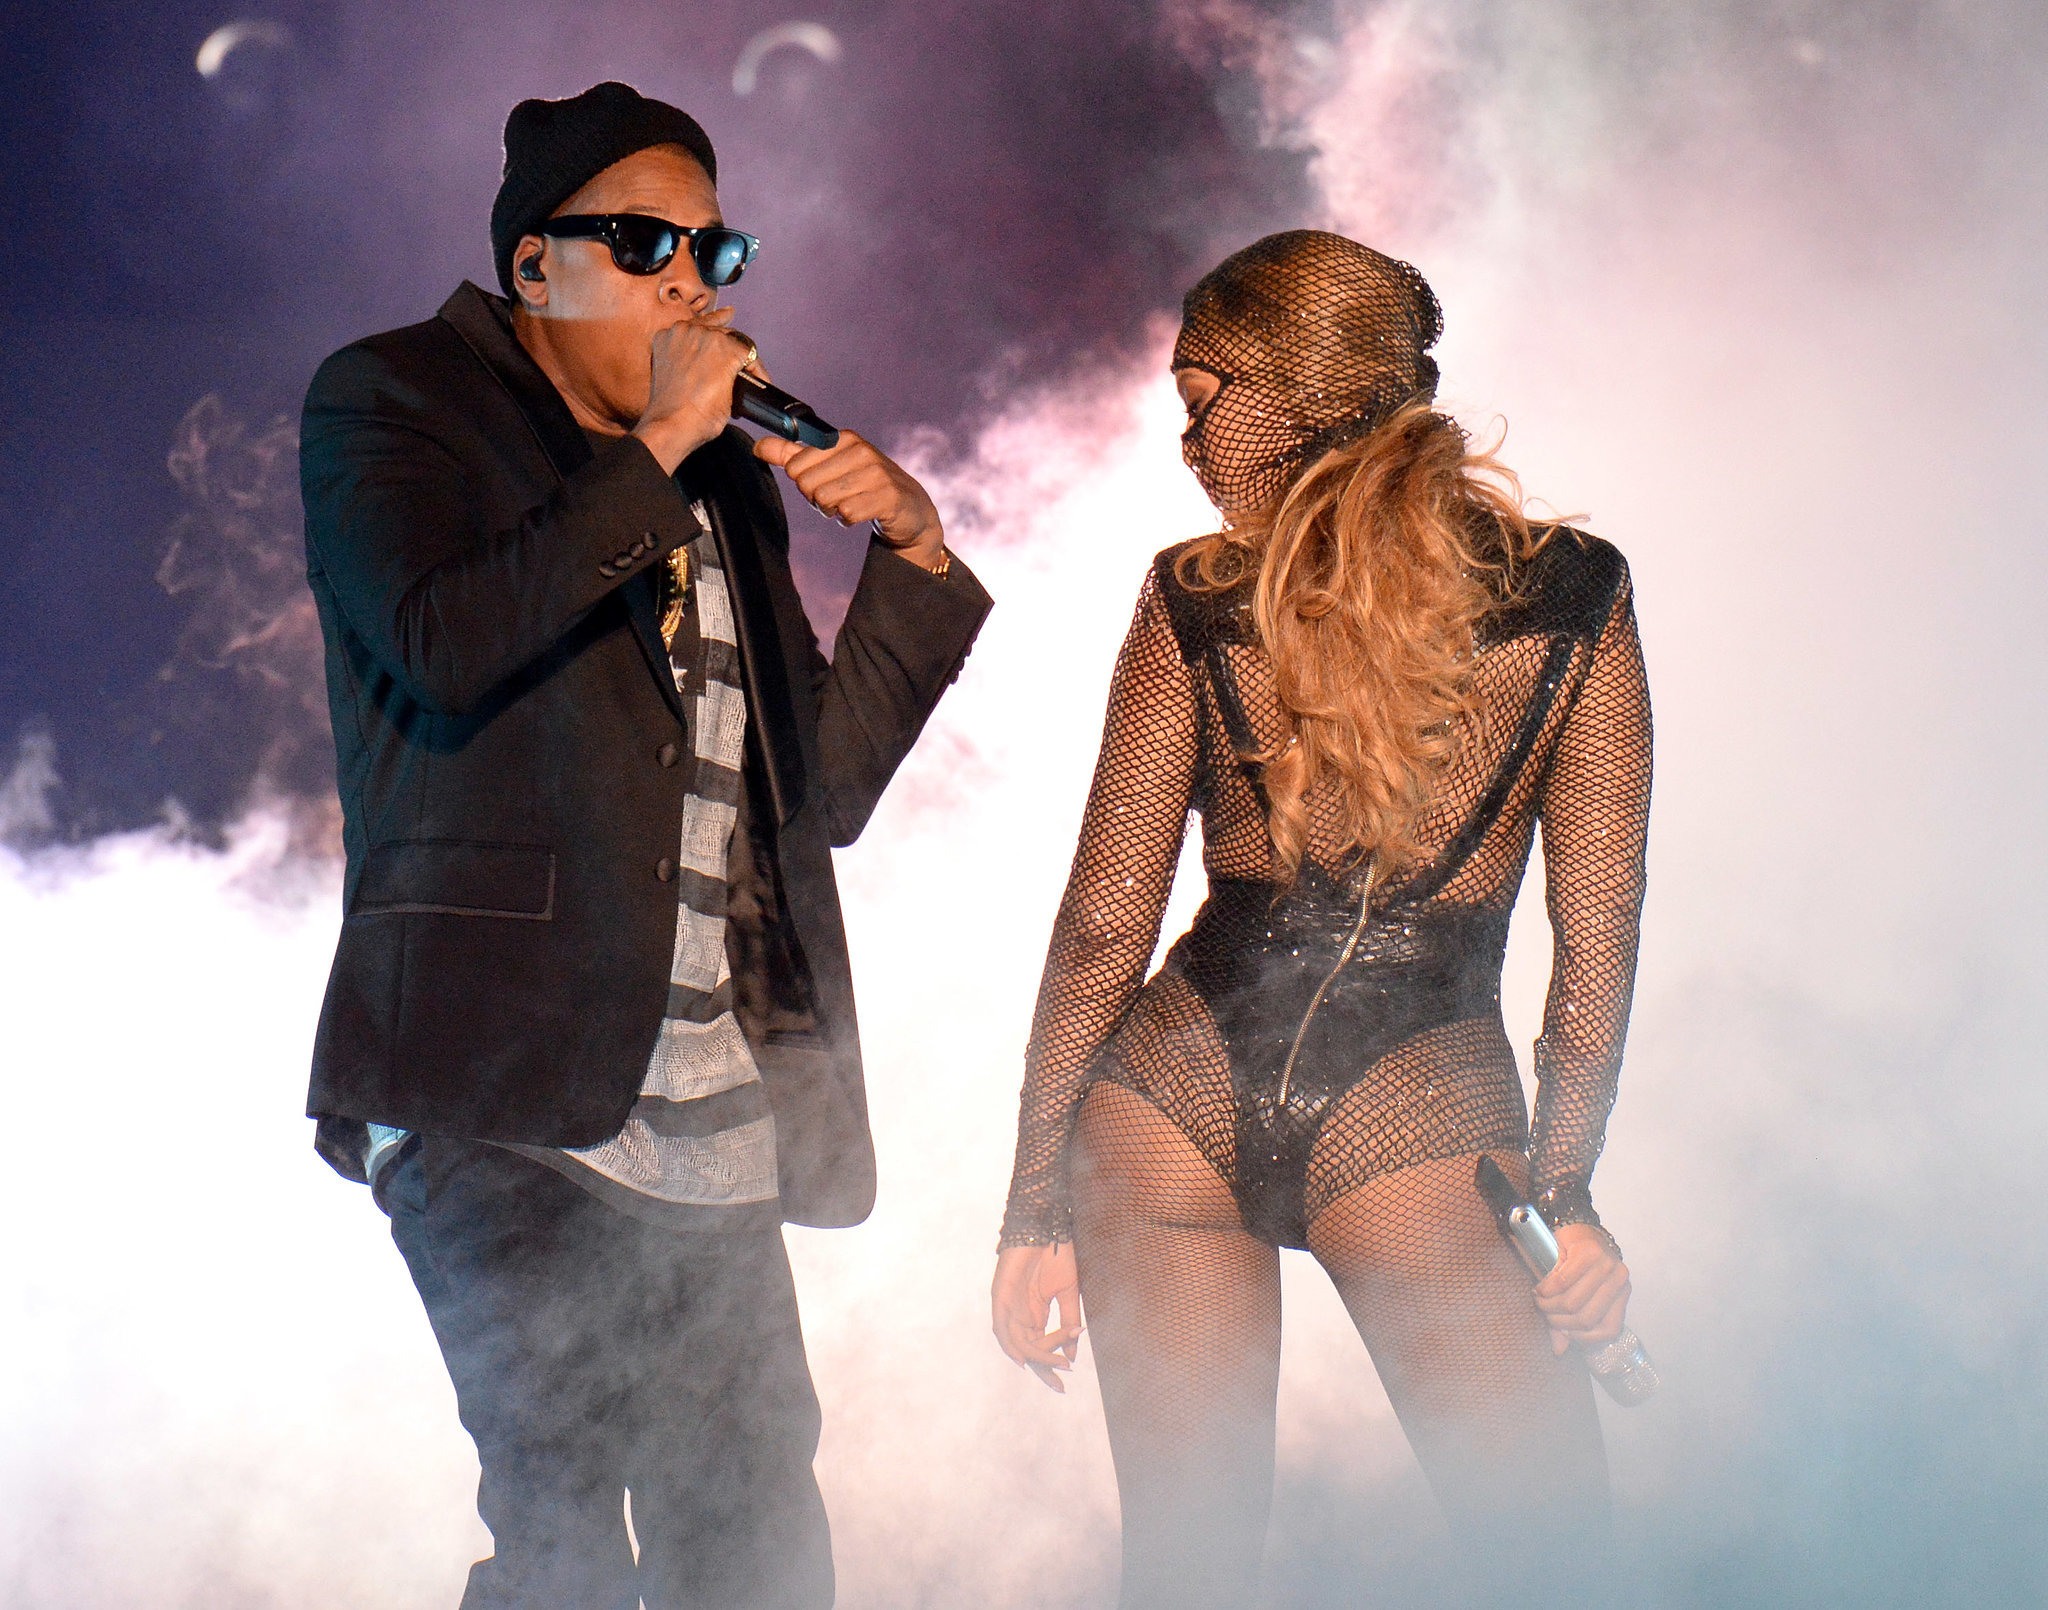 """Source: Getty / Kevin Mazur  June 25: After lying low for a couple weeks, Jay Z and Beyoncé kicked off their On the Run tour in Miami. The couple gave the crowd exactly what they hoped for, showing off lots of hot PDA while performing over 40 of their megahits, as well as footage of their April 2008 wedding during a performance of the song """"Forever Young."""" June 27: The couple released a video showing all the intense backstage prep that went into their tour. In it, we also get a glimpse of the couple's sweet PDA — holding hands, hugging, and shooting each other loving glances — before their 2-year-old daughter, Blue Ivy, tells them """"Good job!"""" after wrapping their debut concert. June 28: Rumors of trouble in paradise started after their Cincinnati stop, when Beyoncé altered the lyrics to her 2006 song """"Resentment"""" during the show. Although she has a history of changing the wording, this particular version features the lyrics """"I gotta look at her in her eyes and see she's had half of me / She ain't even half of me / That b*tch will never be."""" The song is clearly about a woman who takes back her cheating lover."""